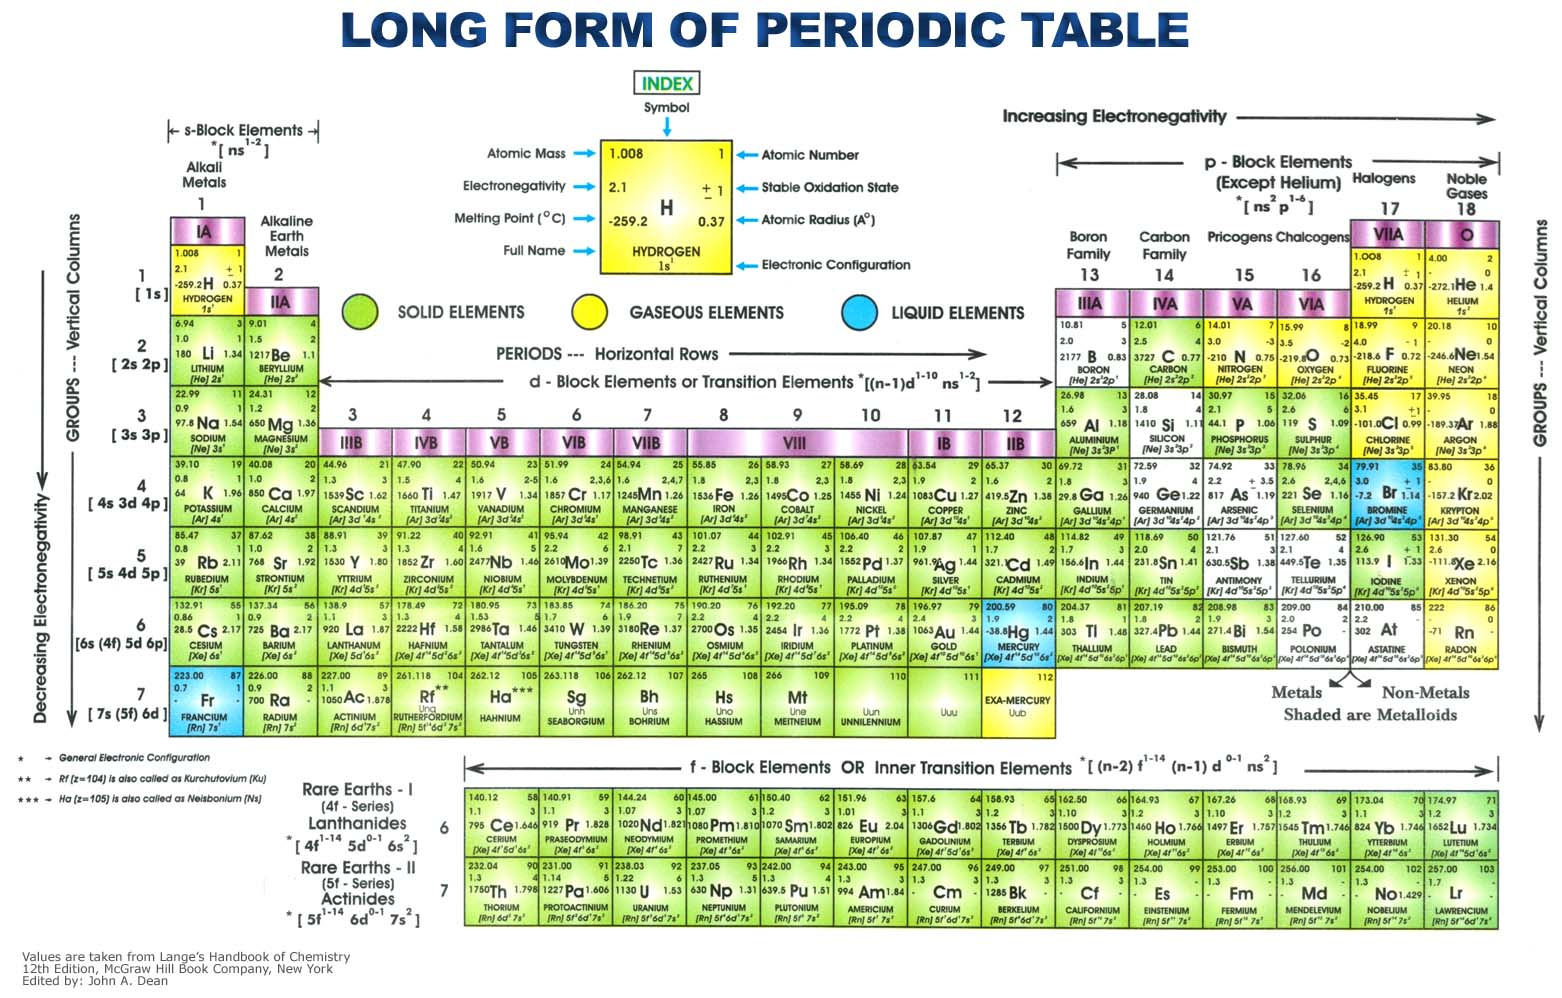 Periodic table with charges listed periodic table charges table listed with periodic site periodic table com off http periodic dayah www is here gamestrikefo Choice Image